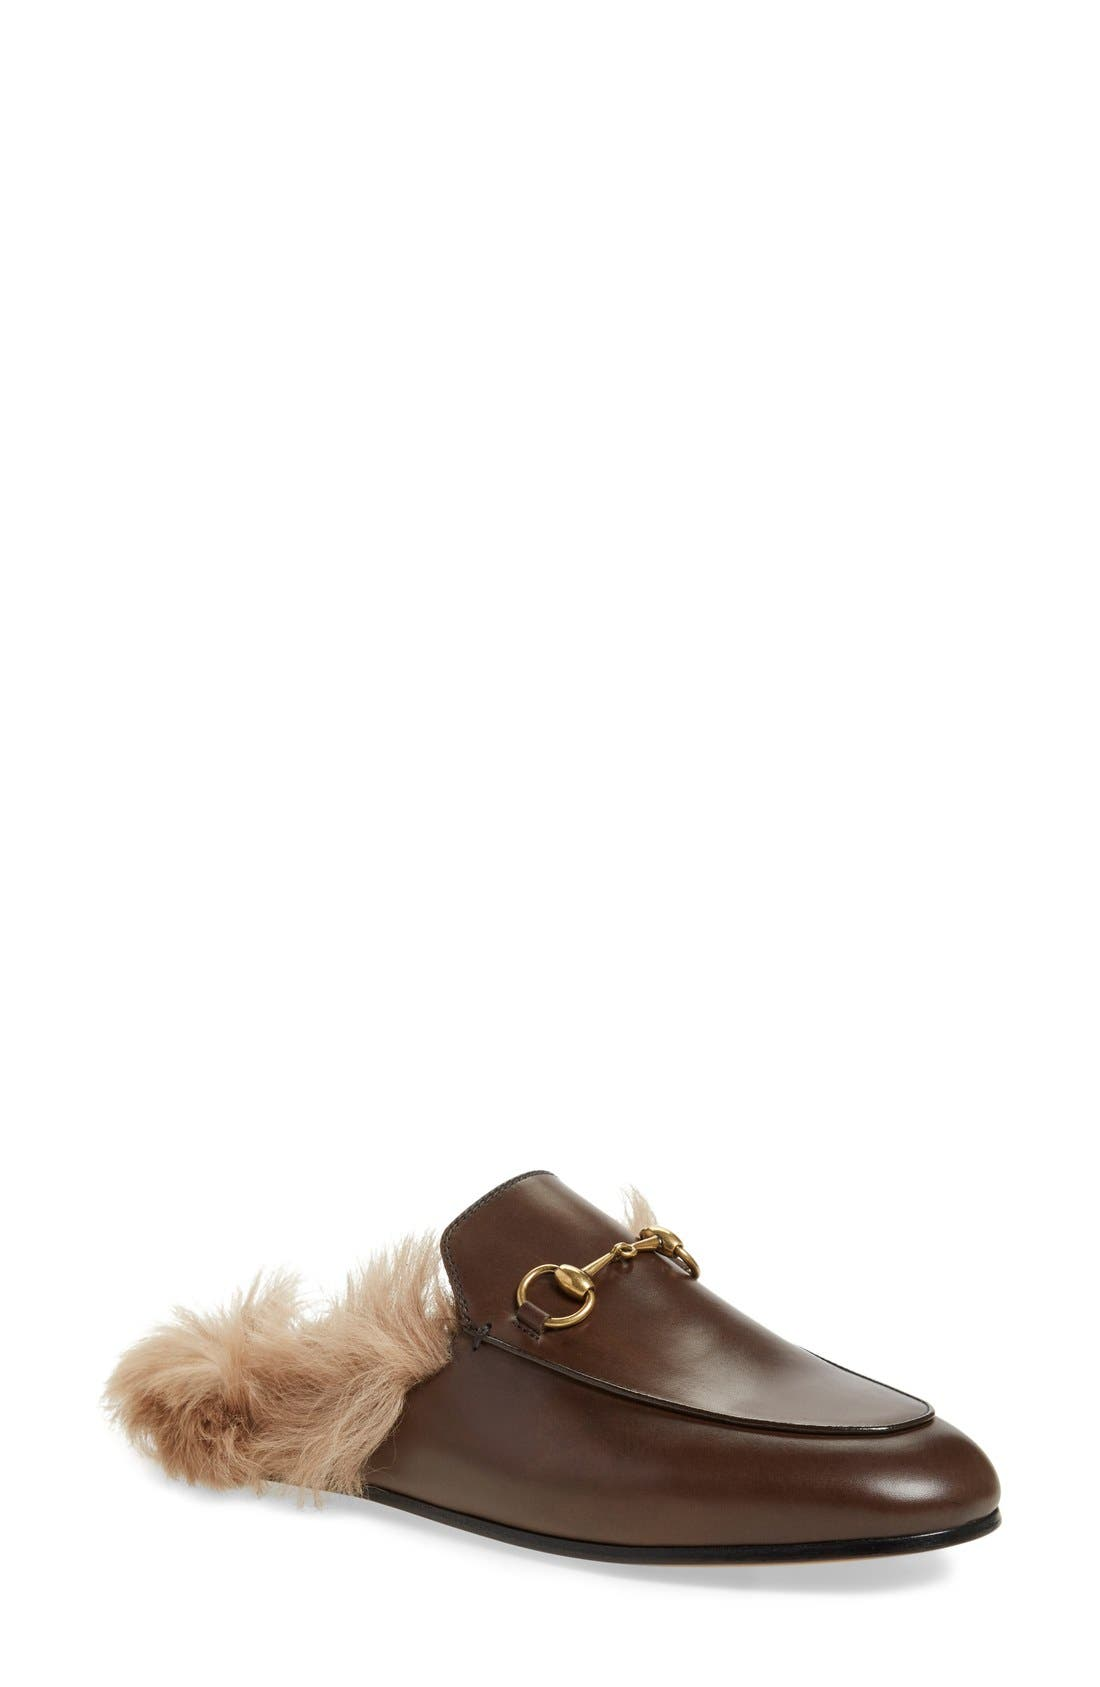 Alternate Image 1 Selected - Gucci 'Princetown' Genuine Shearling Loafer Mule (Women)